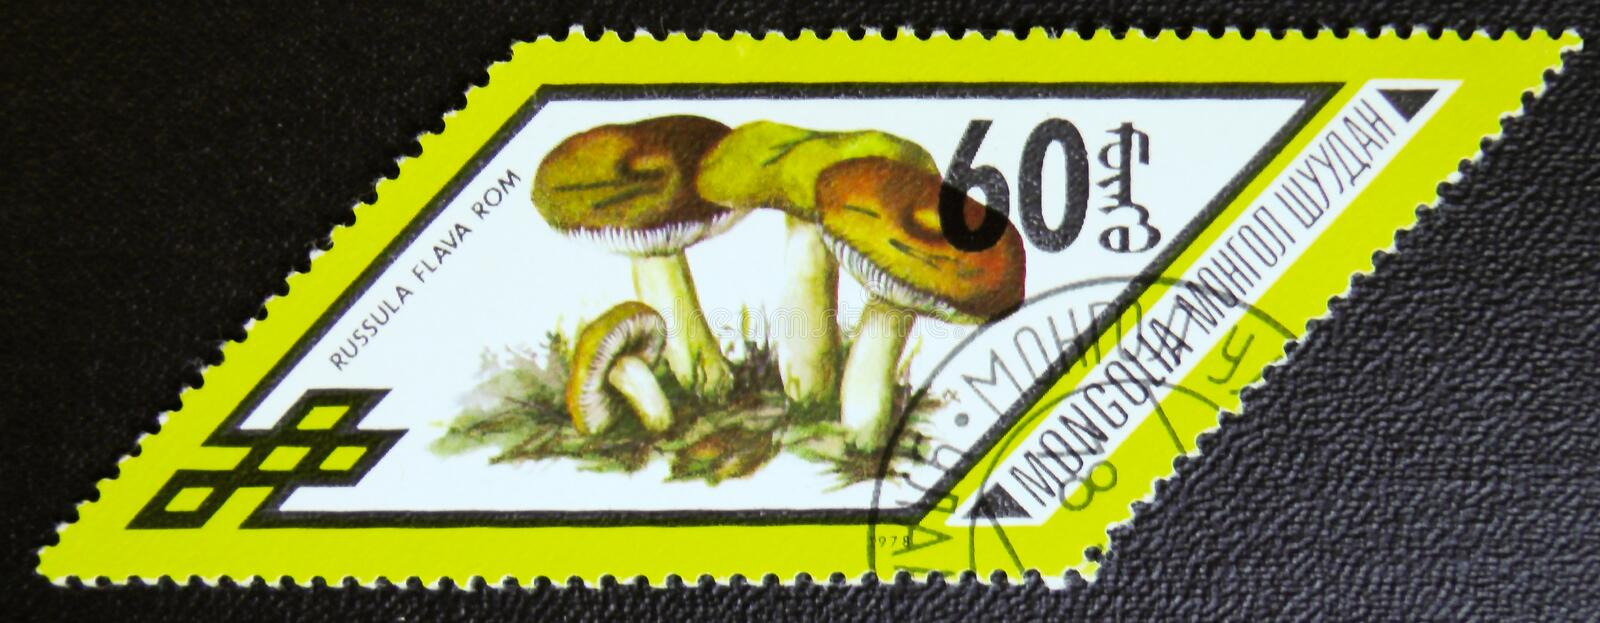 Russula Flama rom mushrooms, series, circa 1978. MOSCOW, RUSSIA - JANUARY 7, 2017: A stamp printed in Mongolia shows Russula Flama rom mushrooms, series, circa stock photo